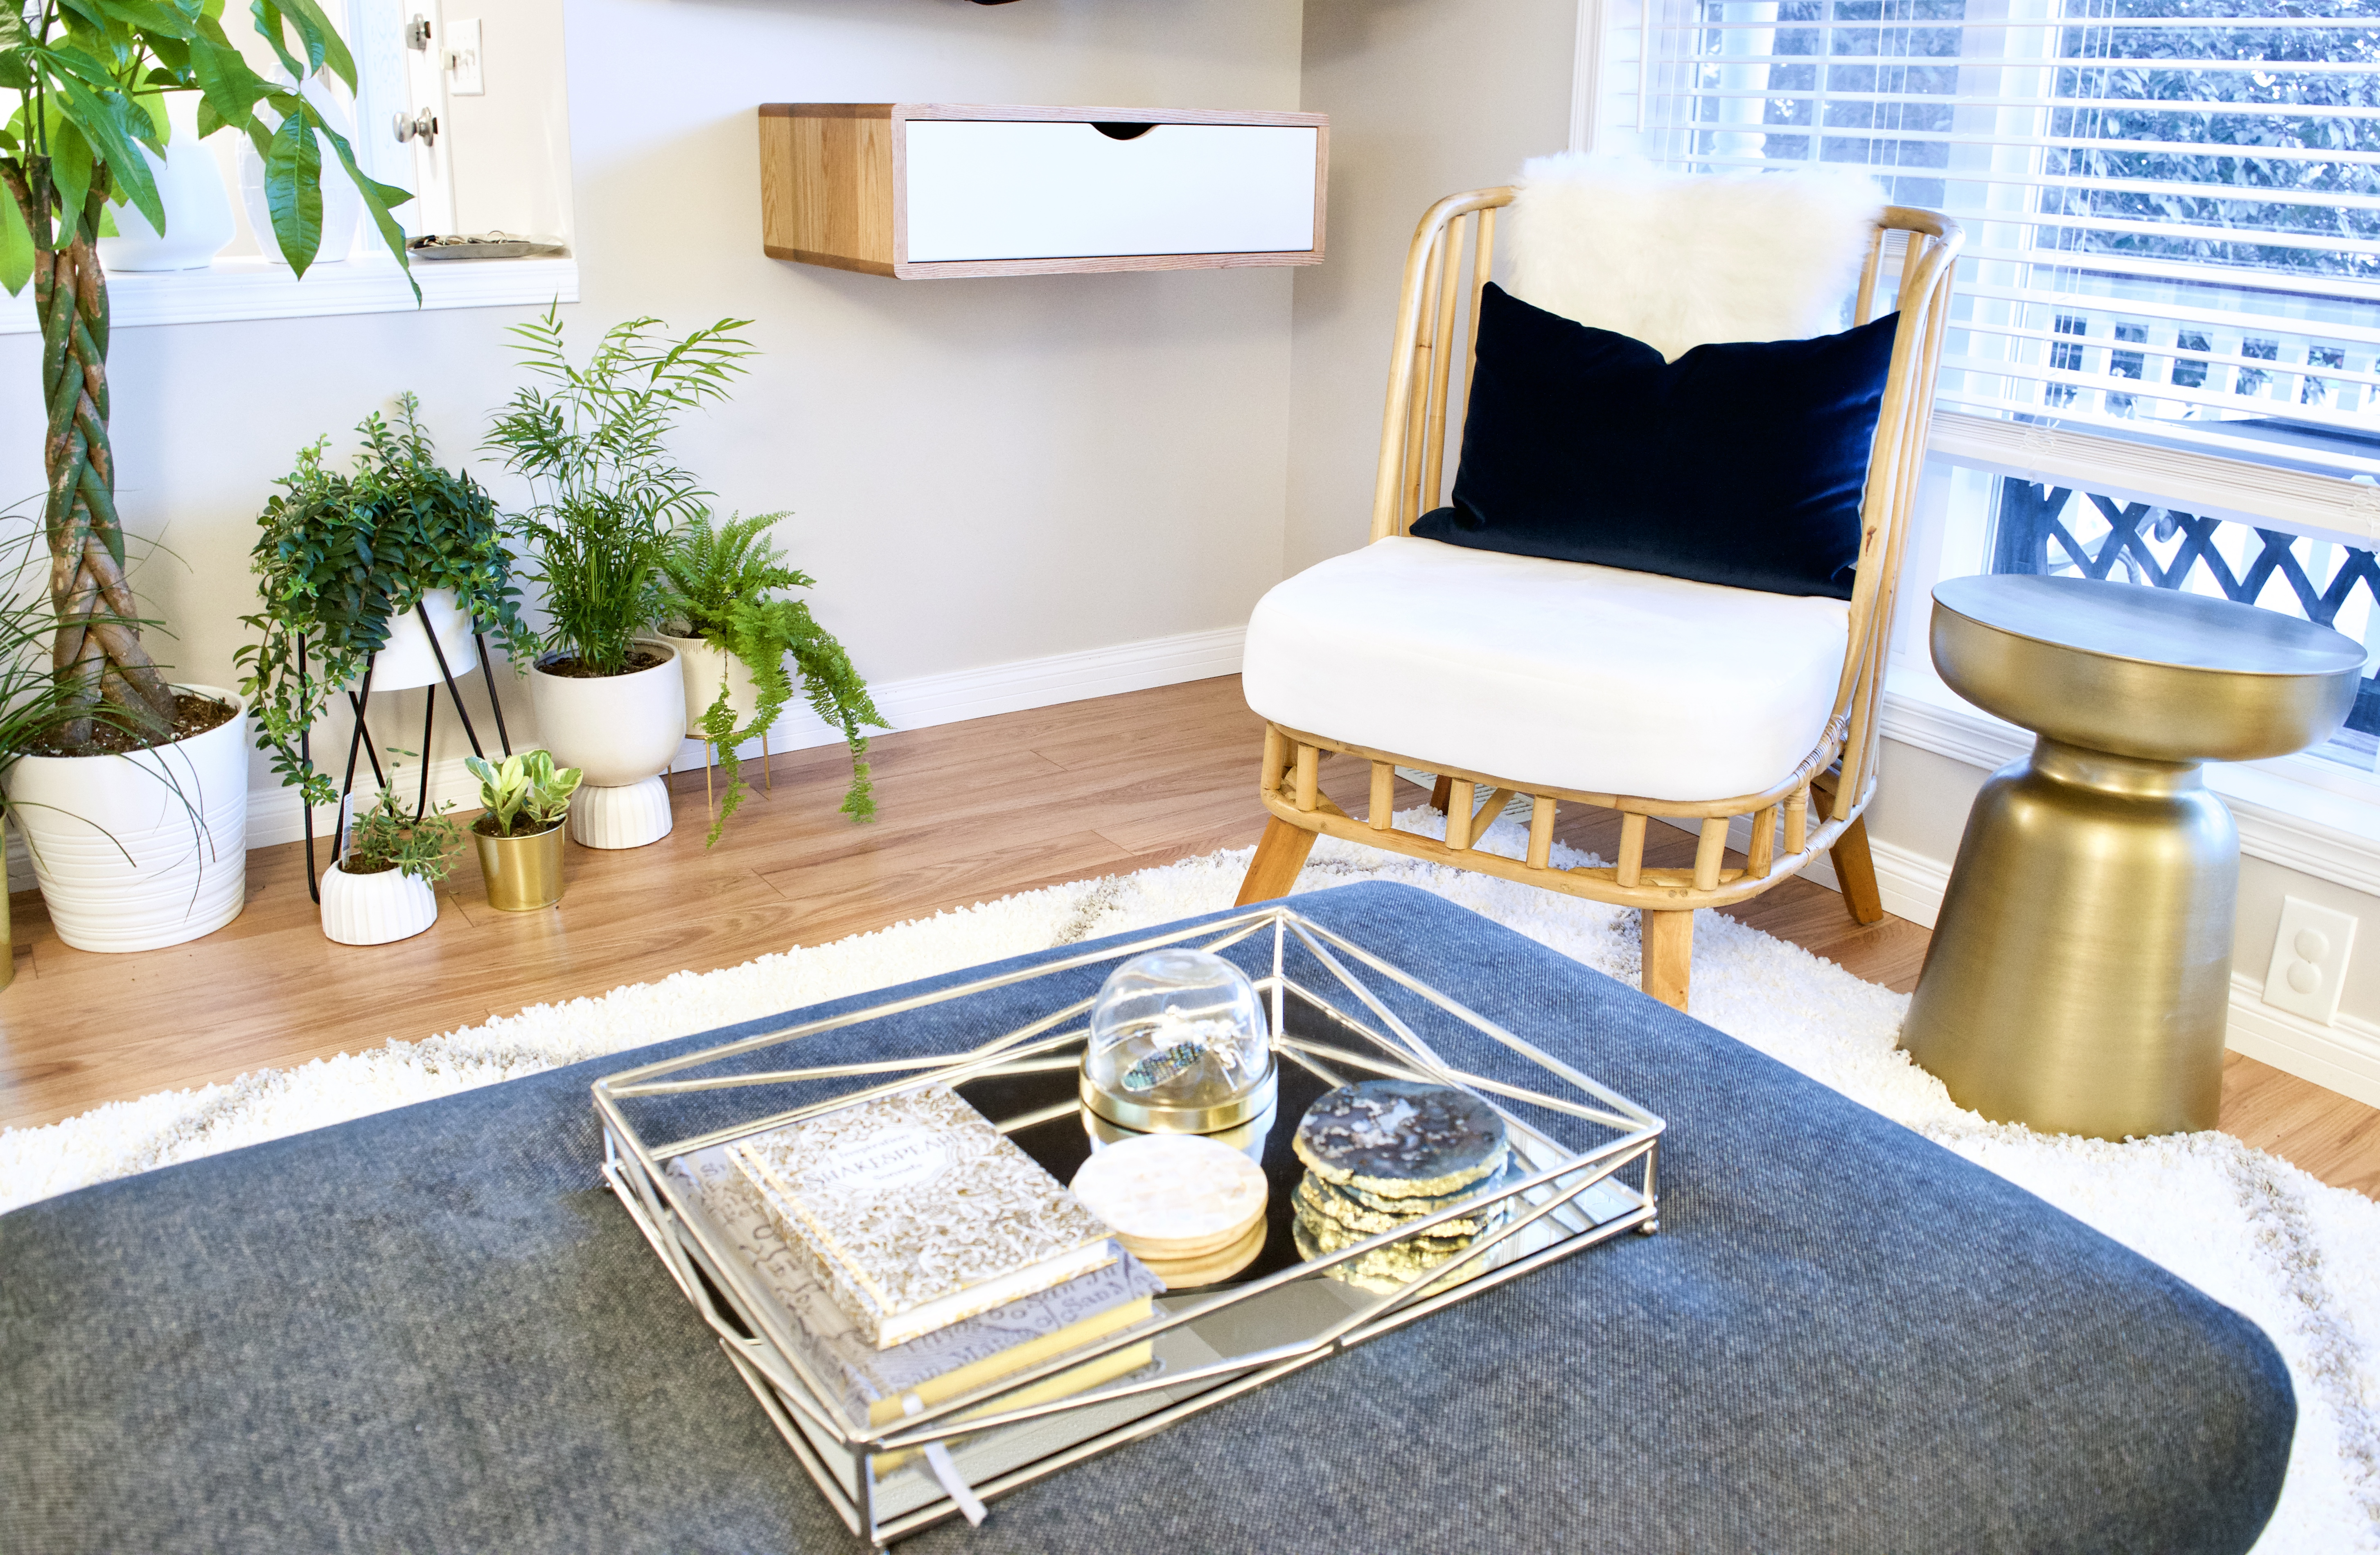 wicker chair wicker dry climate care gold side table tray ottoman plants plant stands blue velvet white rug living room cat safe plants modern 2019 2020 interior design small space silver gold grey grey Calgary cat pet dog safe plants toxic non-toxic